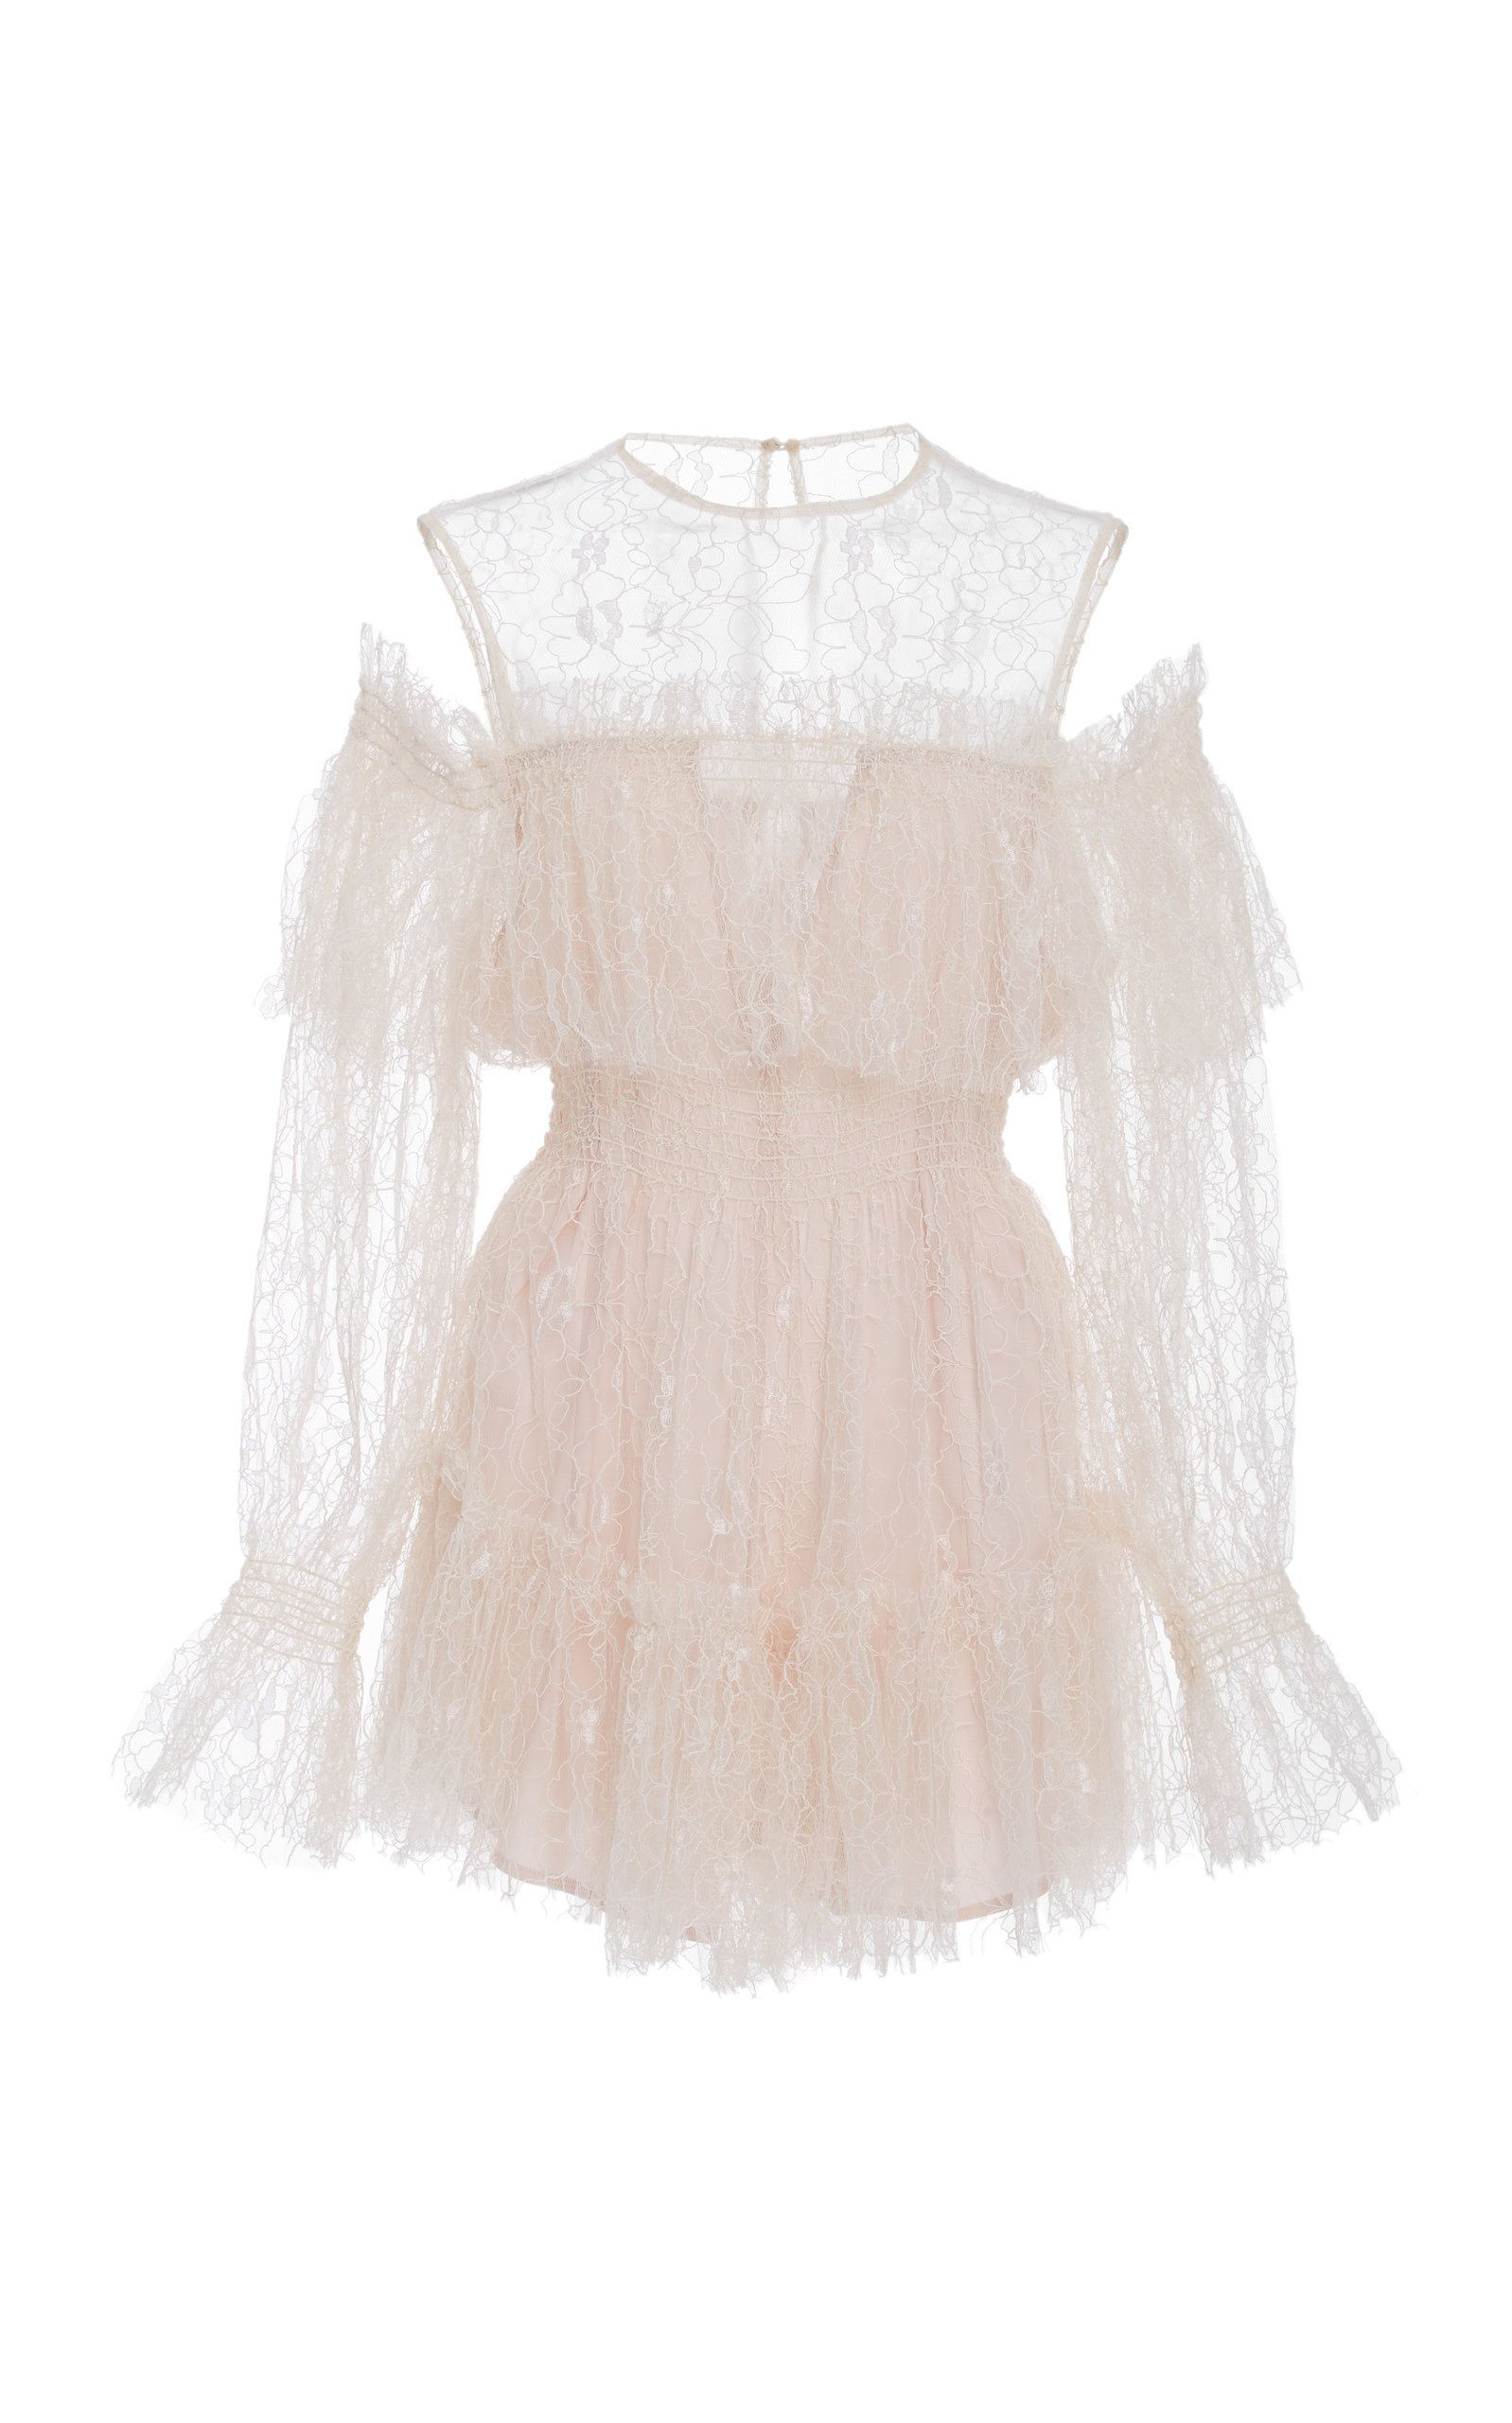 9ccb10526f ALICE MCCALL ONE IN A MILLION PLAYSUIT.  alicemccall  cloth ...